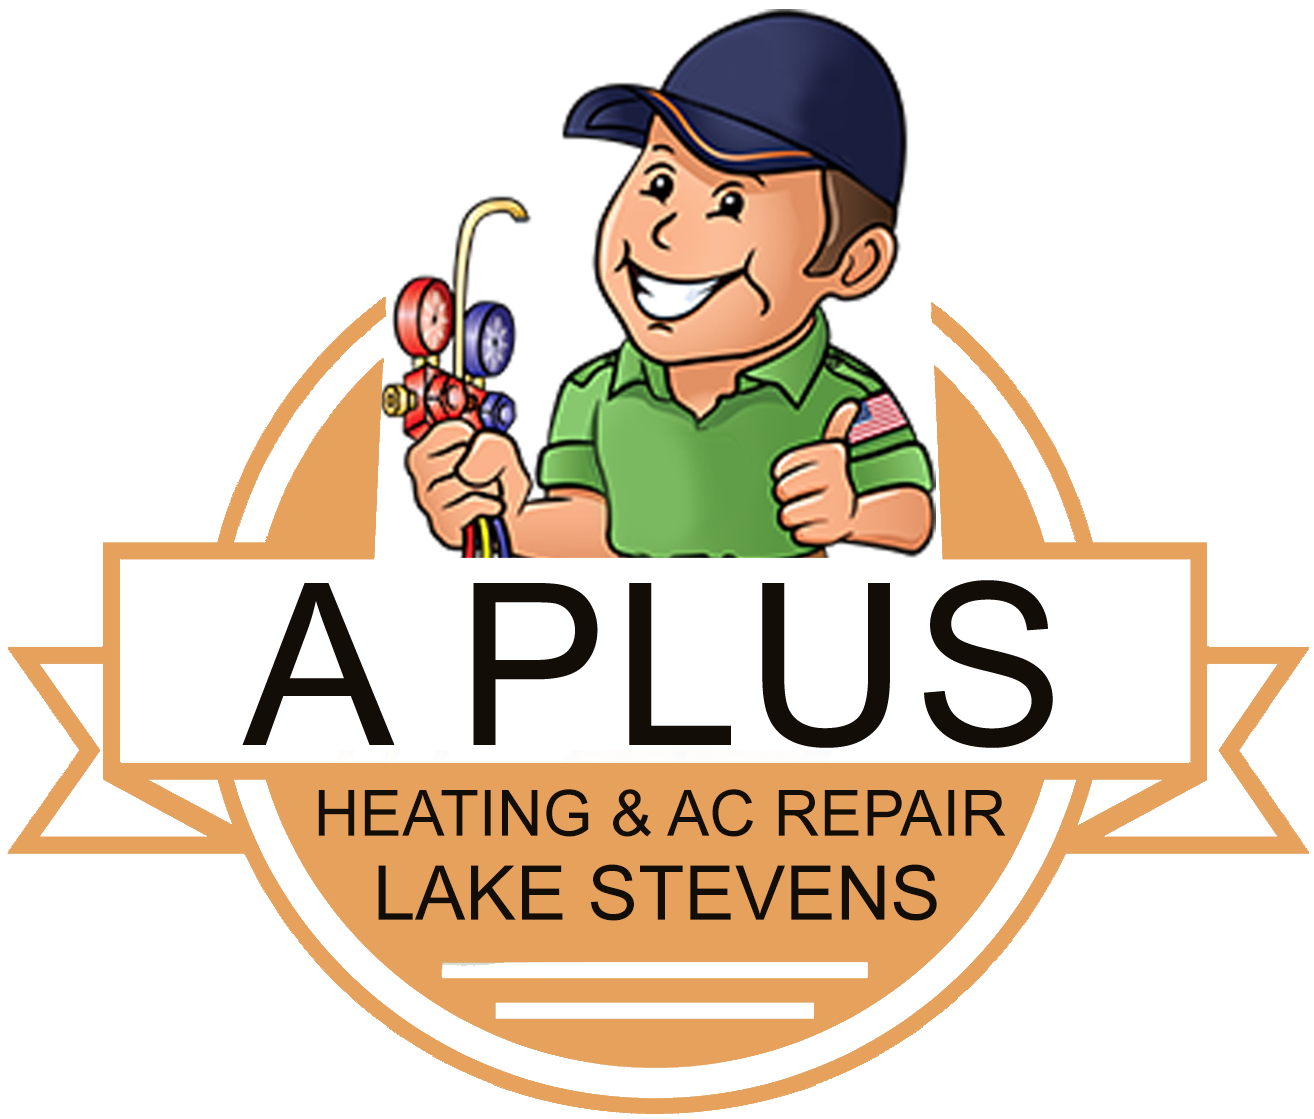 House ac unit clipart banner royalty free stock Heating And Air Conditioning Lake Stevens - Emergency Heating And AC ... banner royalty free stock